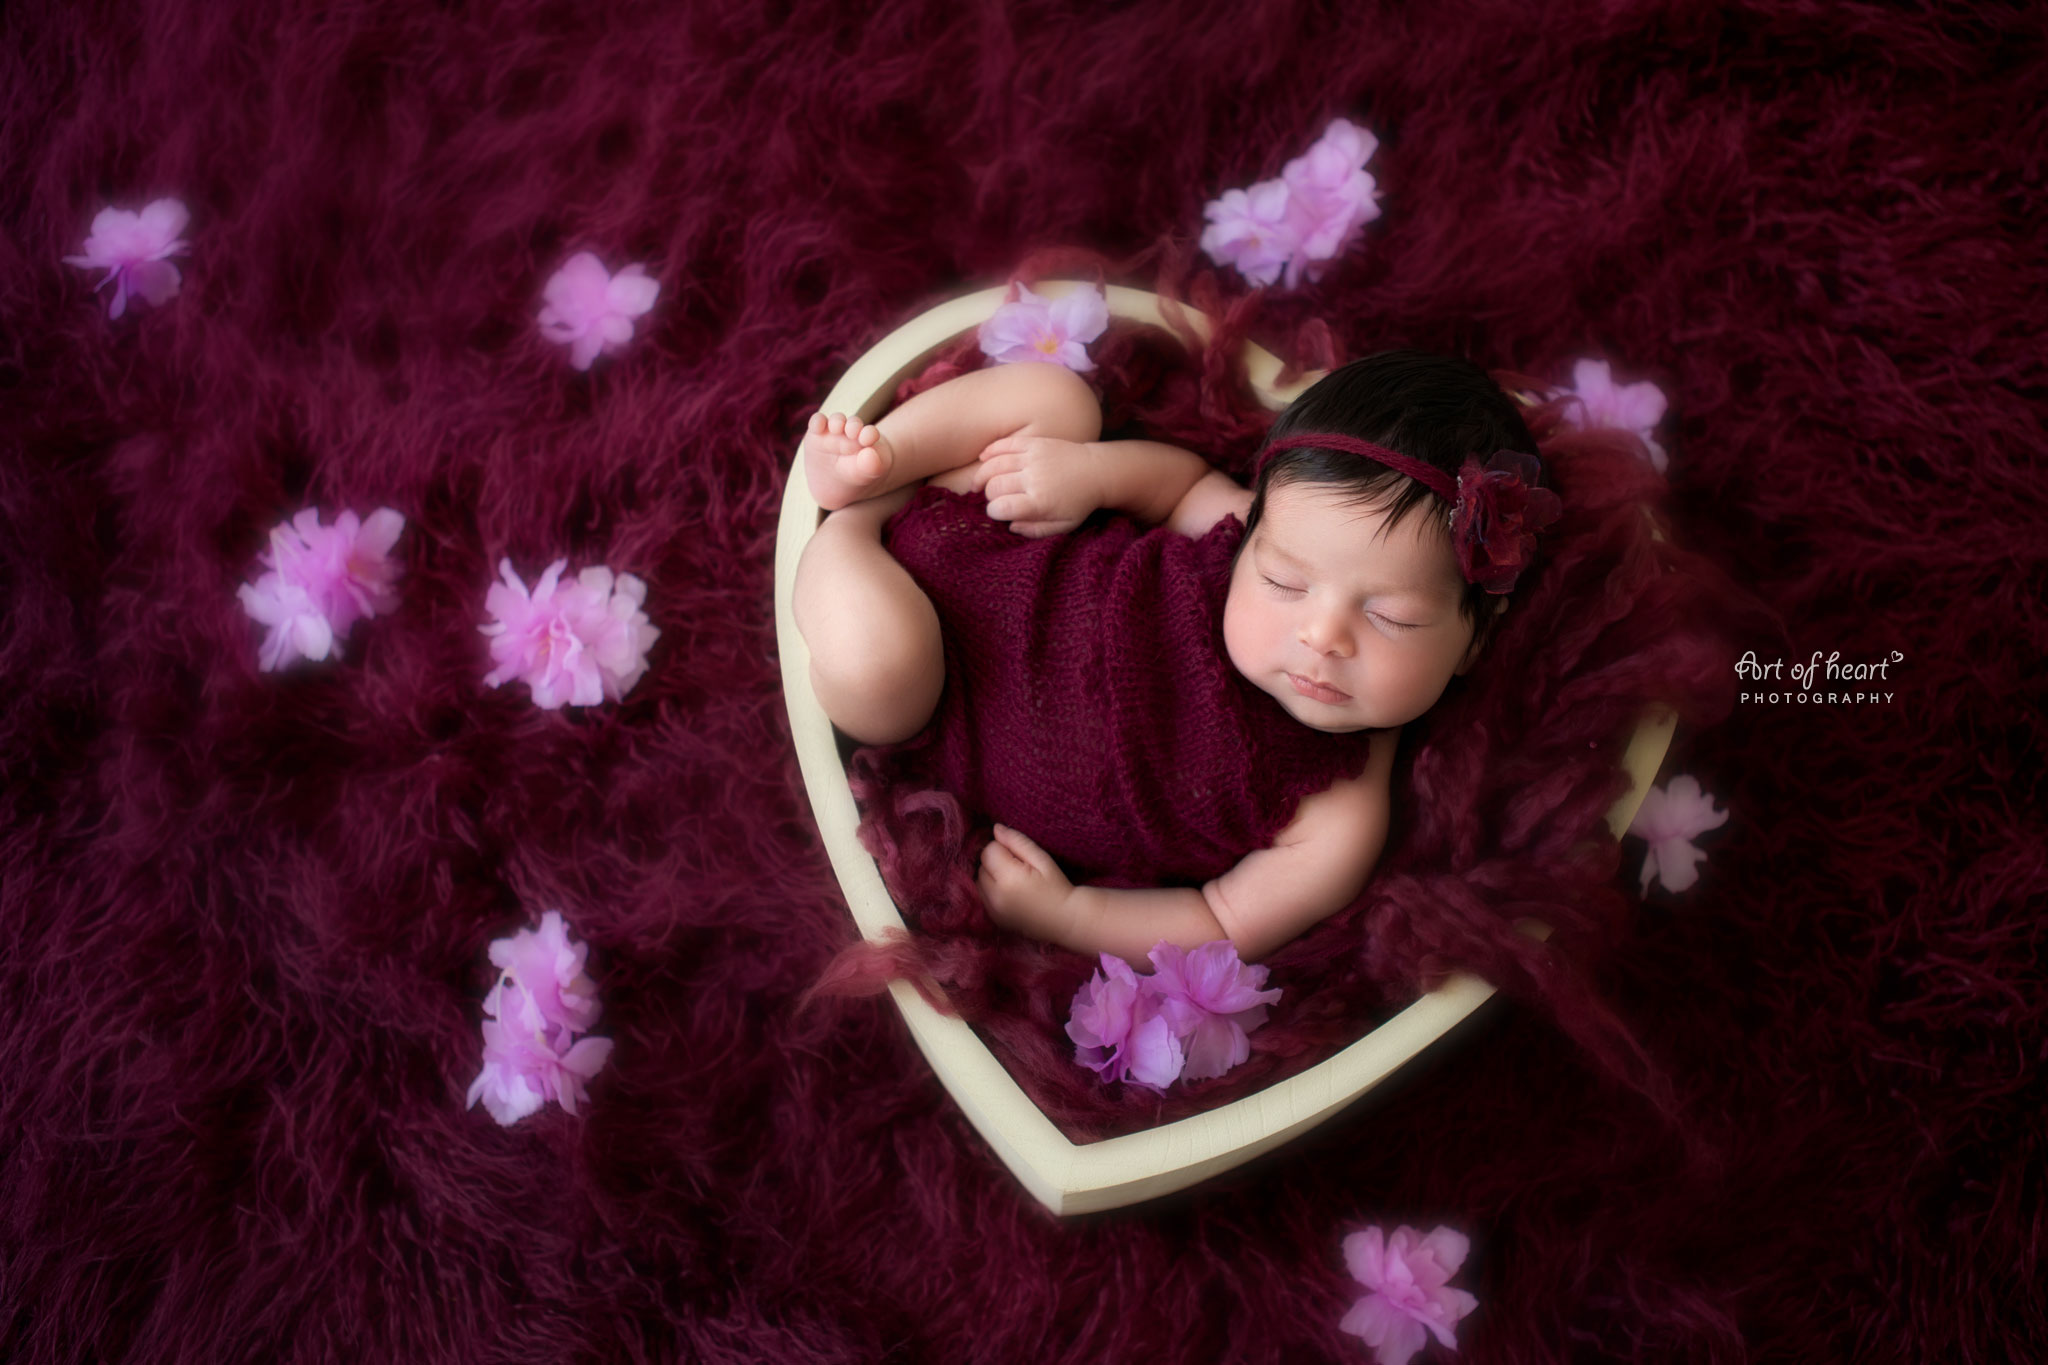 Art of Heart Photography - New Born